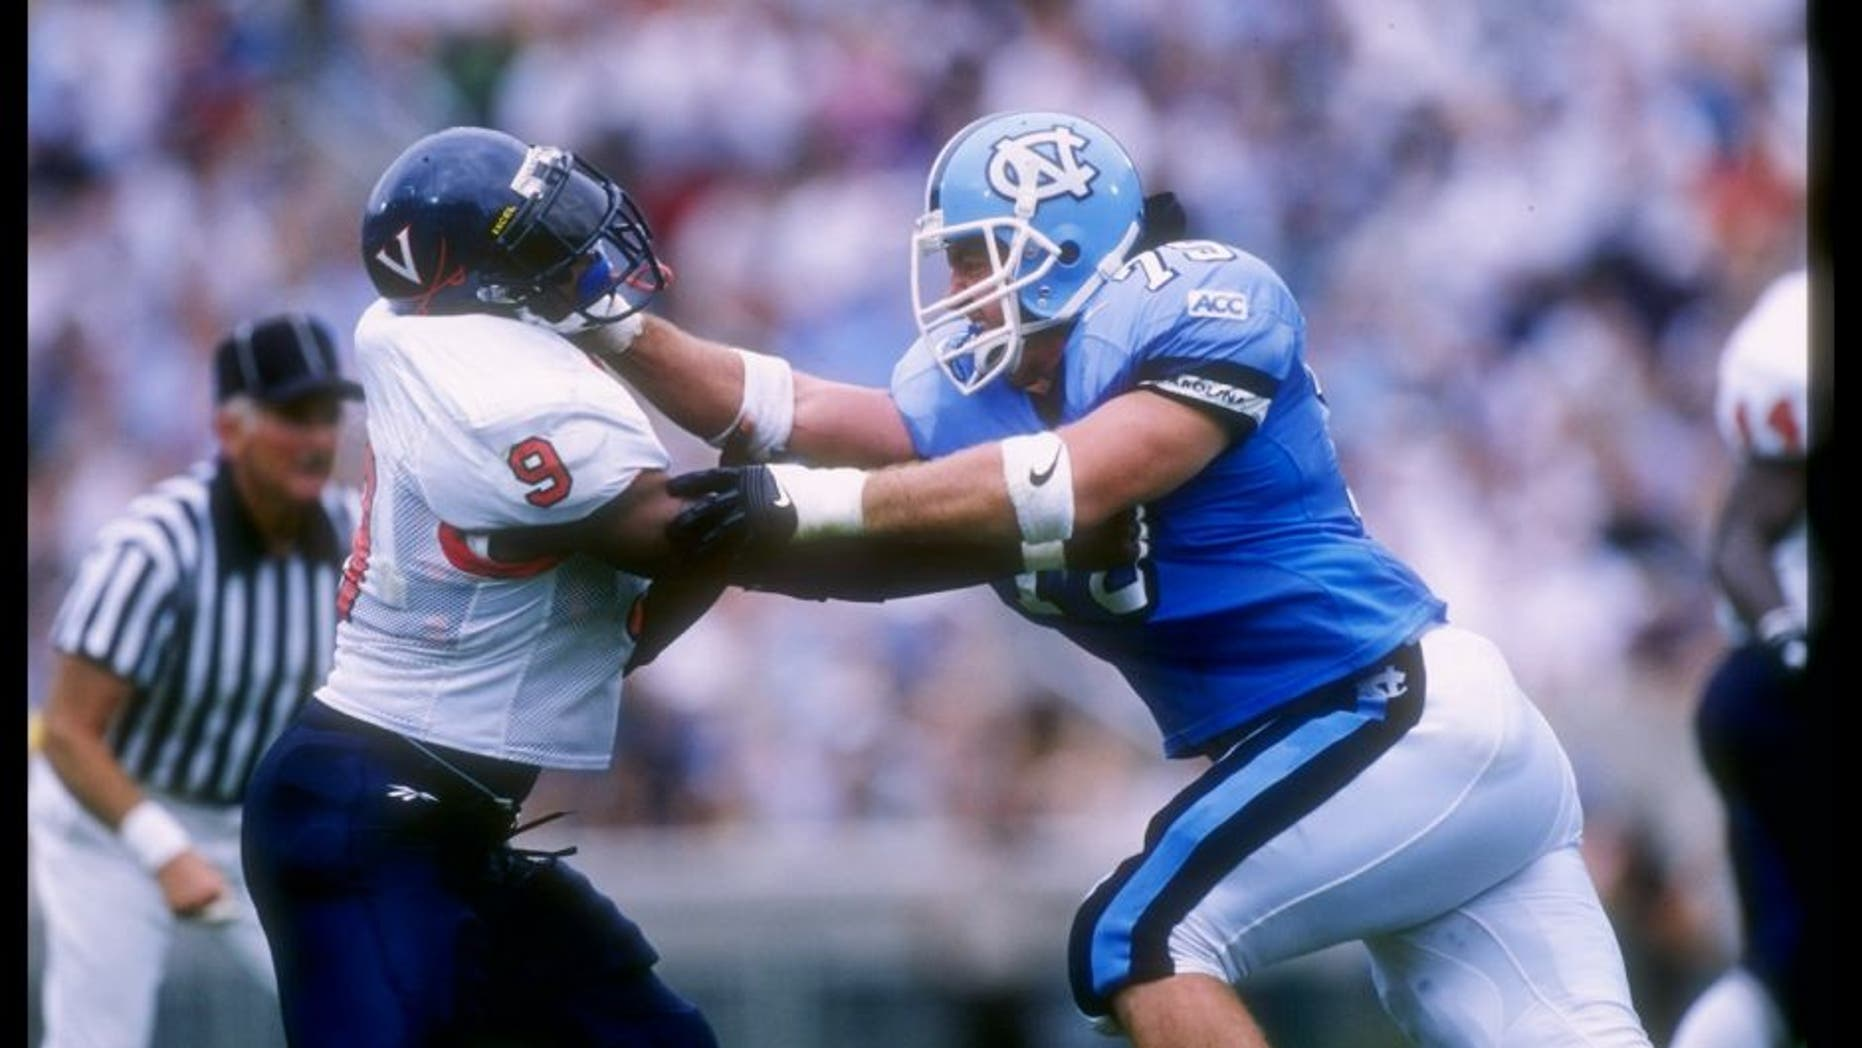 27 Sep 1997: Ryan Hoffman (right) of North Carolina battles Shannon Taylor #9 of the Virginia Cavaliers during the Tar Heels 48-20 win at Kenan Stadium in Chapel Hill, North Carolina. Mandatory Credit: Doug Pensinger /Allsport